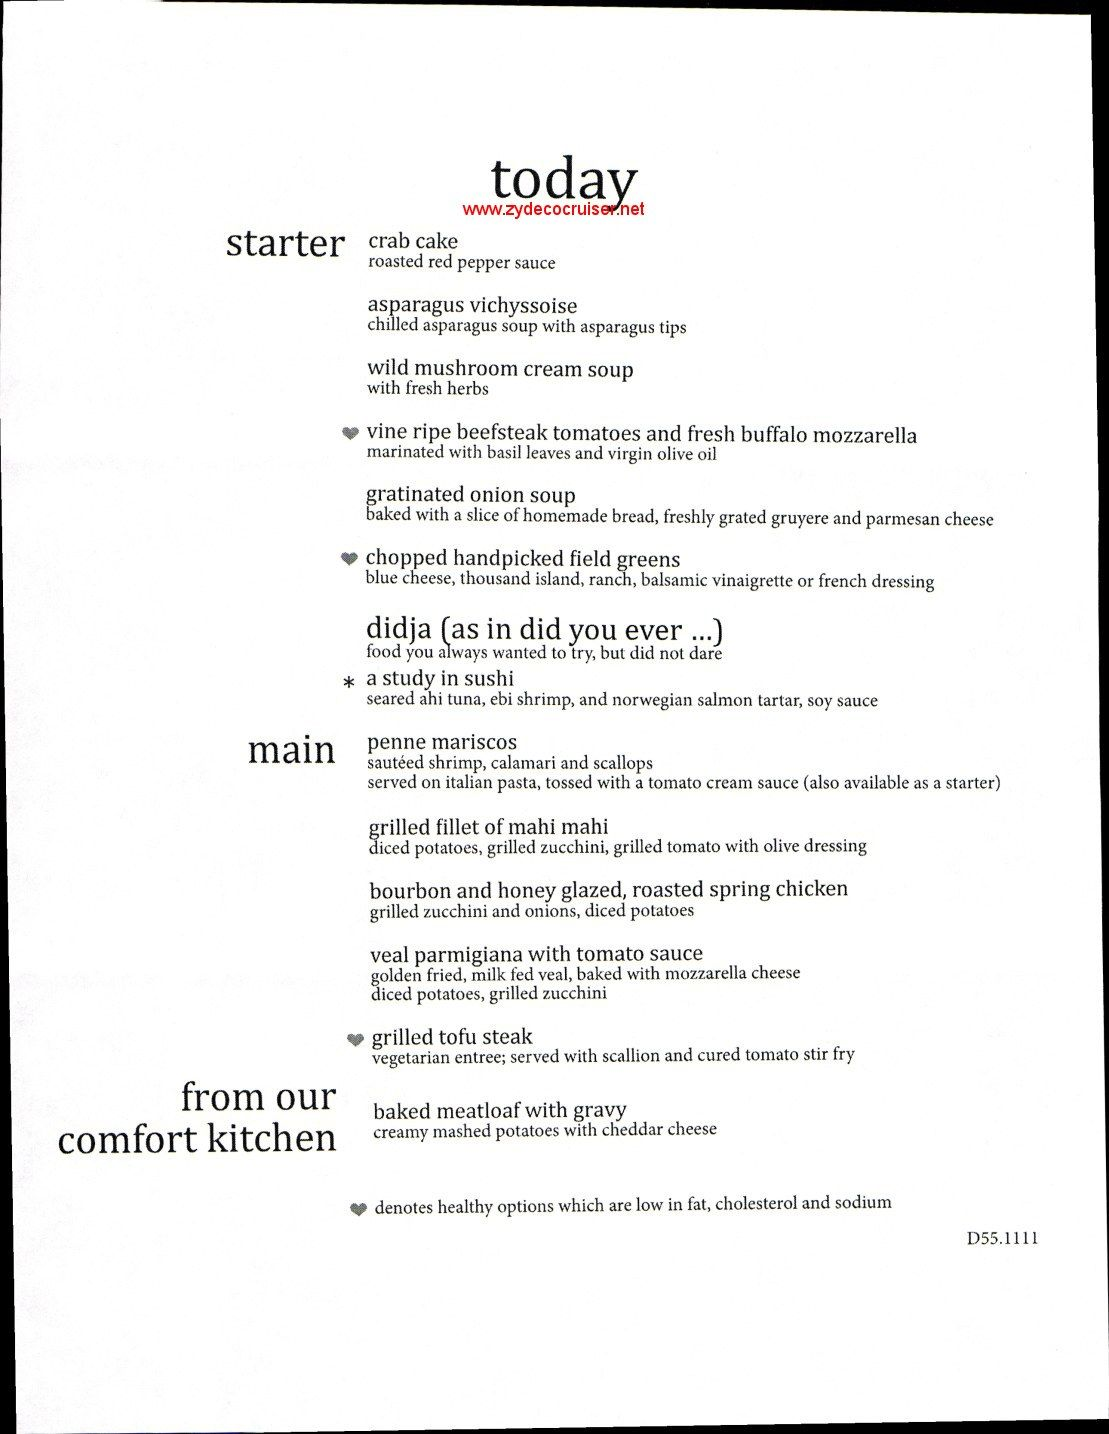 5 day cruise menu for mdr Cruise Pinterest Carnival  : e1d8bea5ff8546b5f2762f3e7d24ae70 from www.pinterest.com size 1109 x 1434 jpeg 178kB